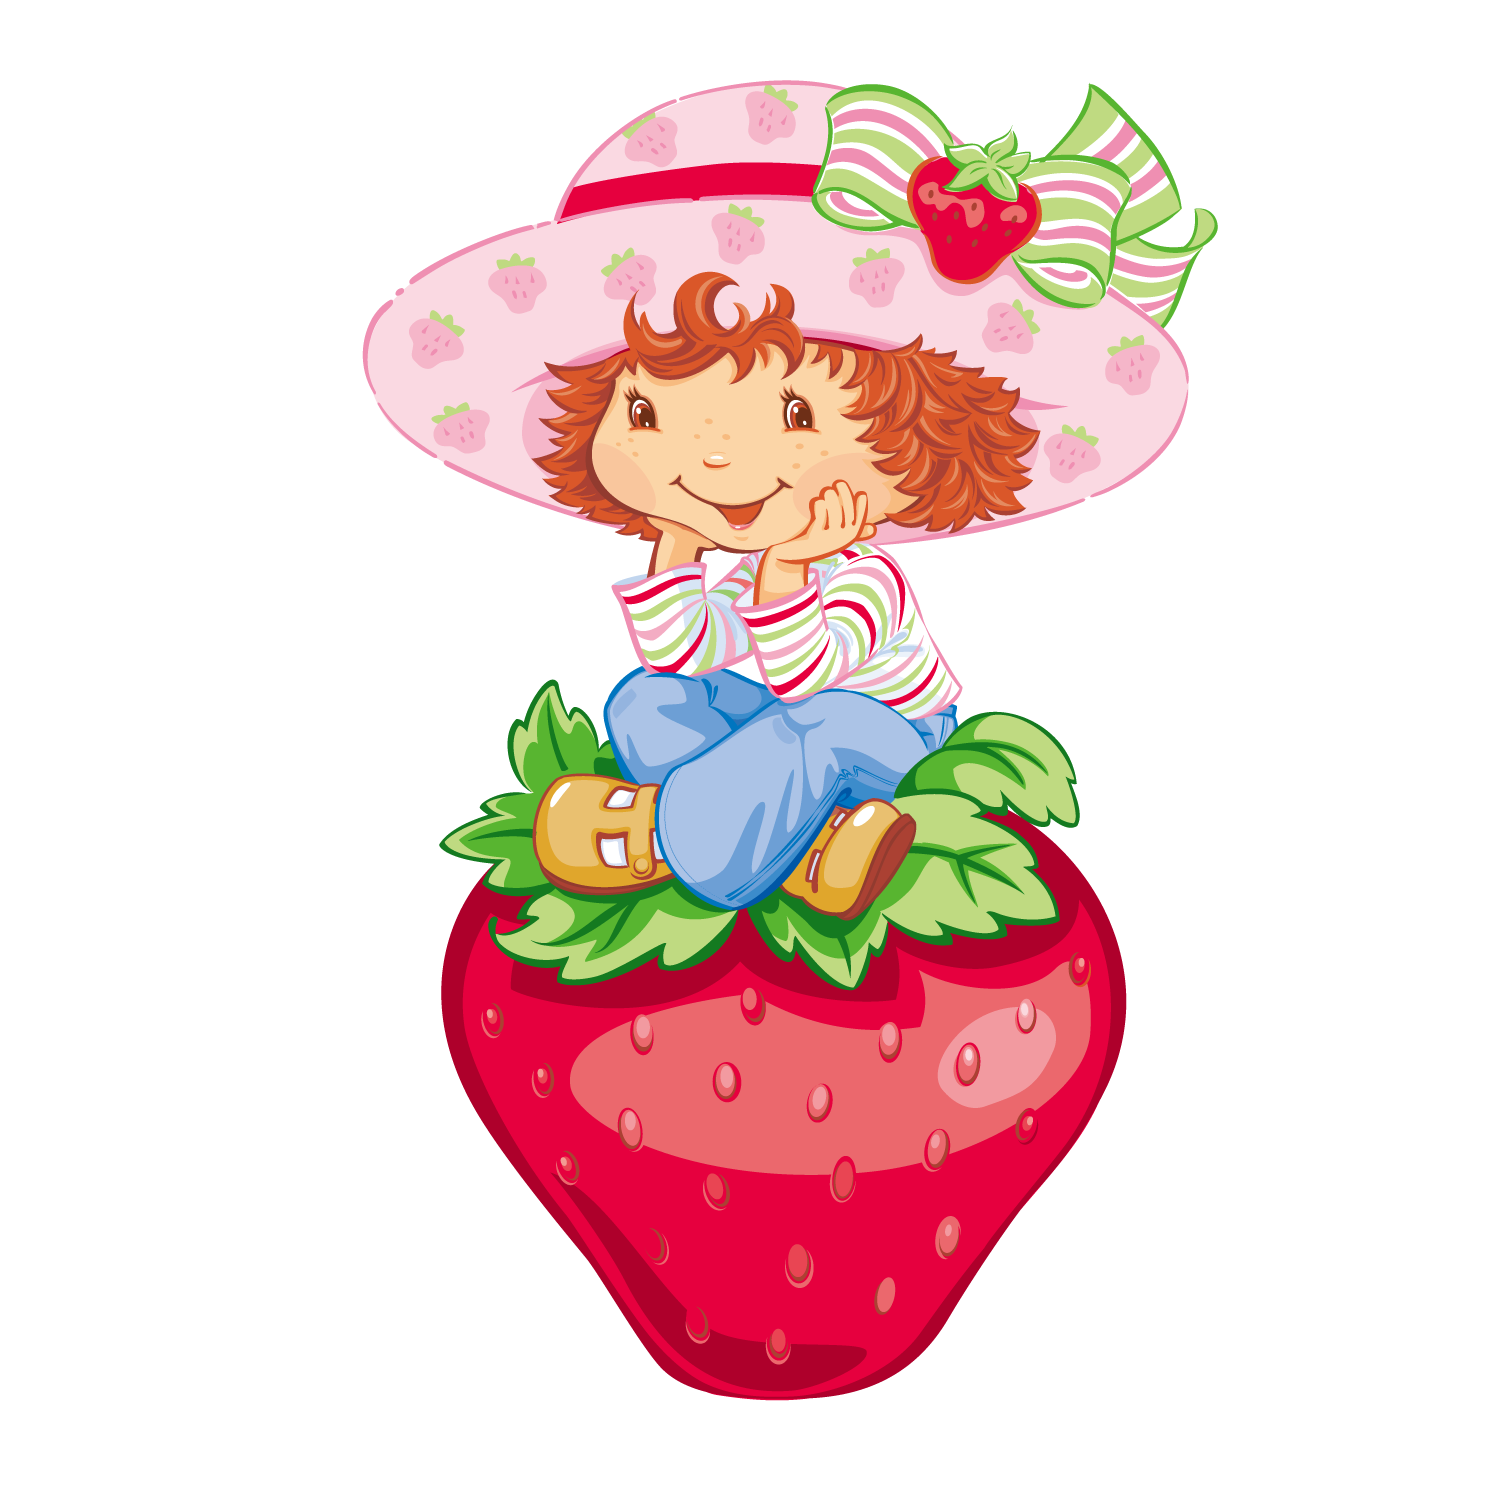 hight resolution of transparent library shortcake tart cheesecake strawberries clipart strawberry girl